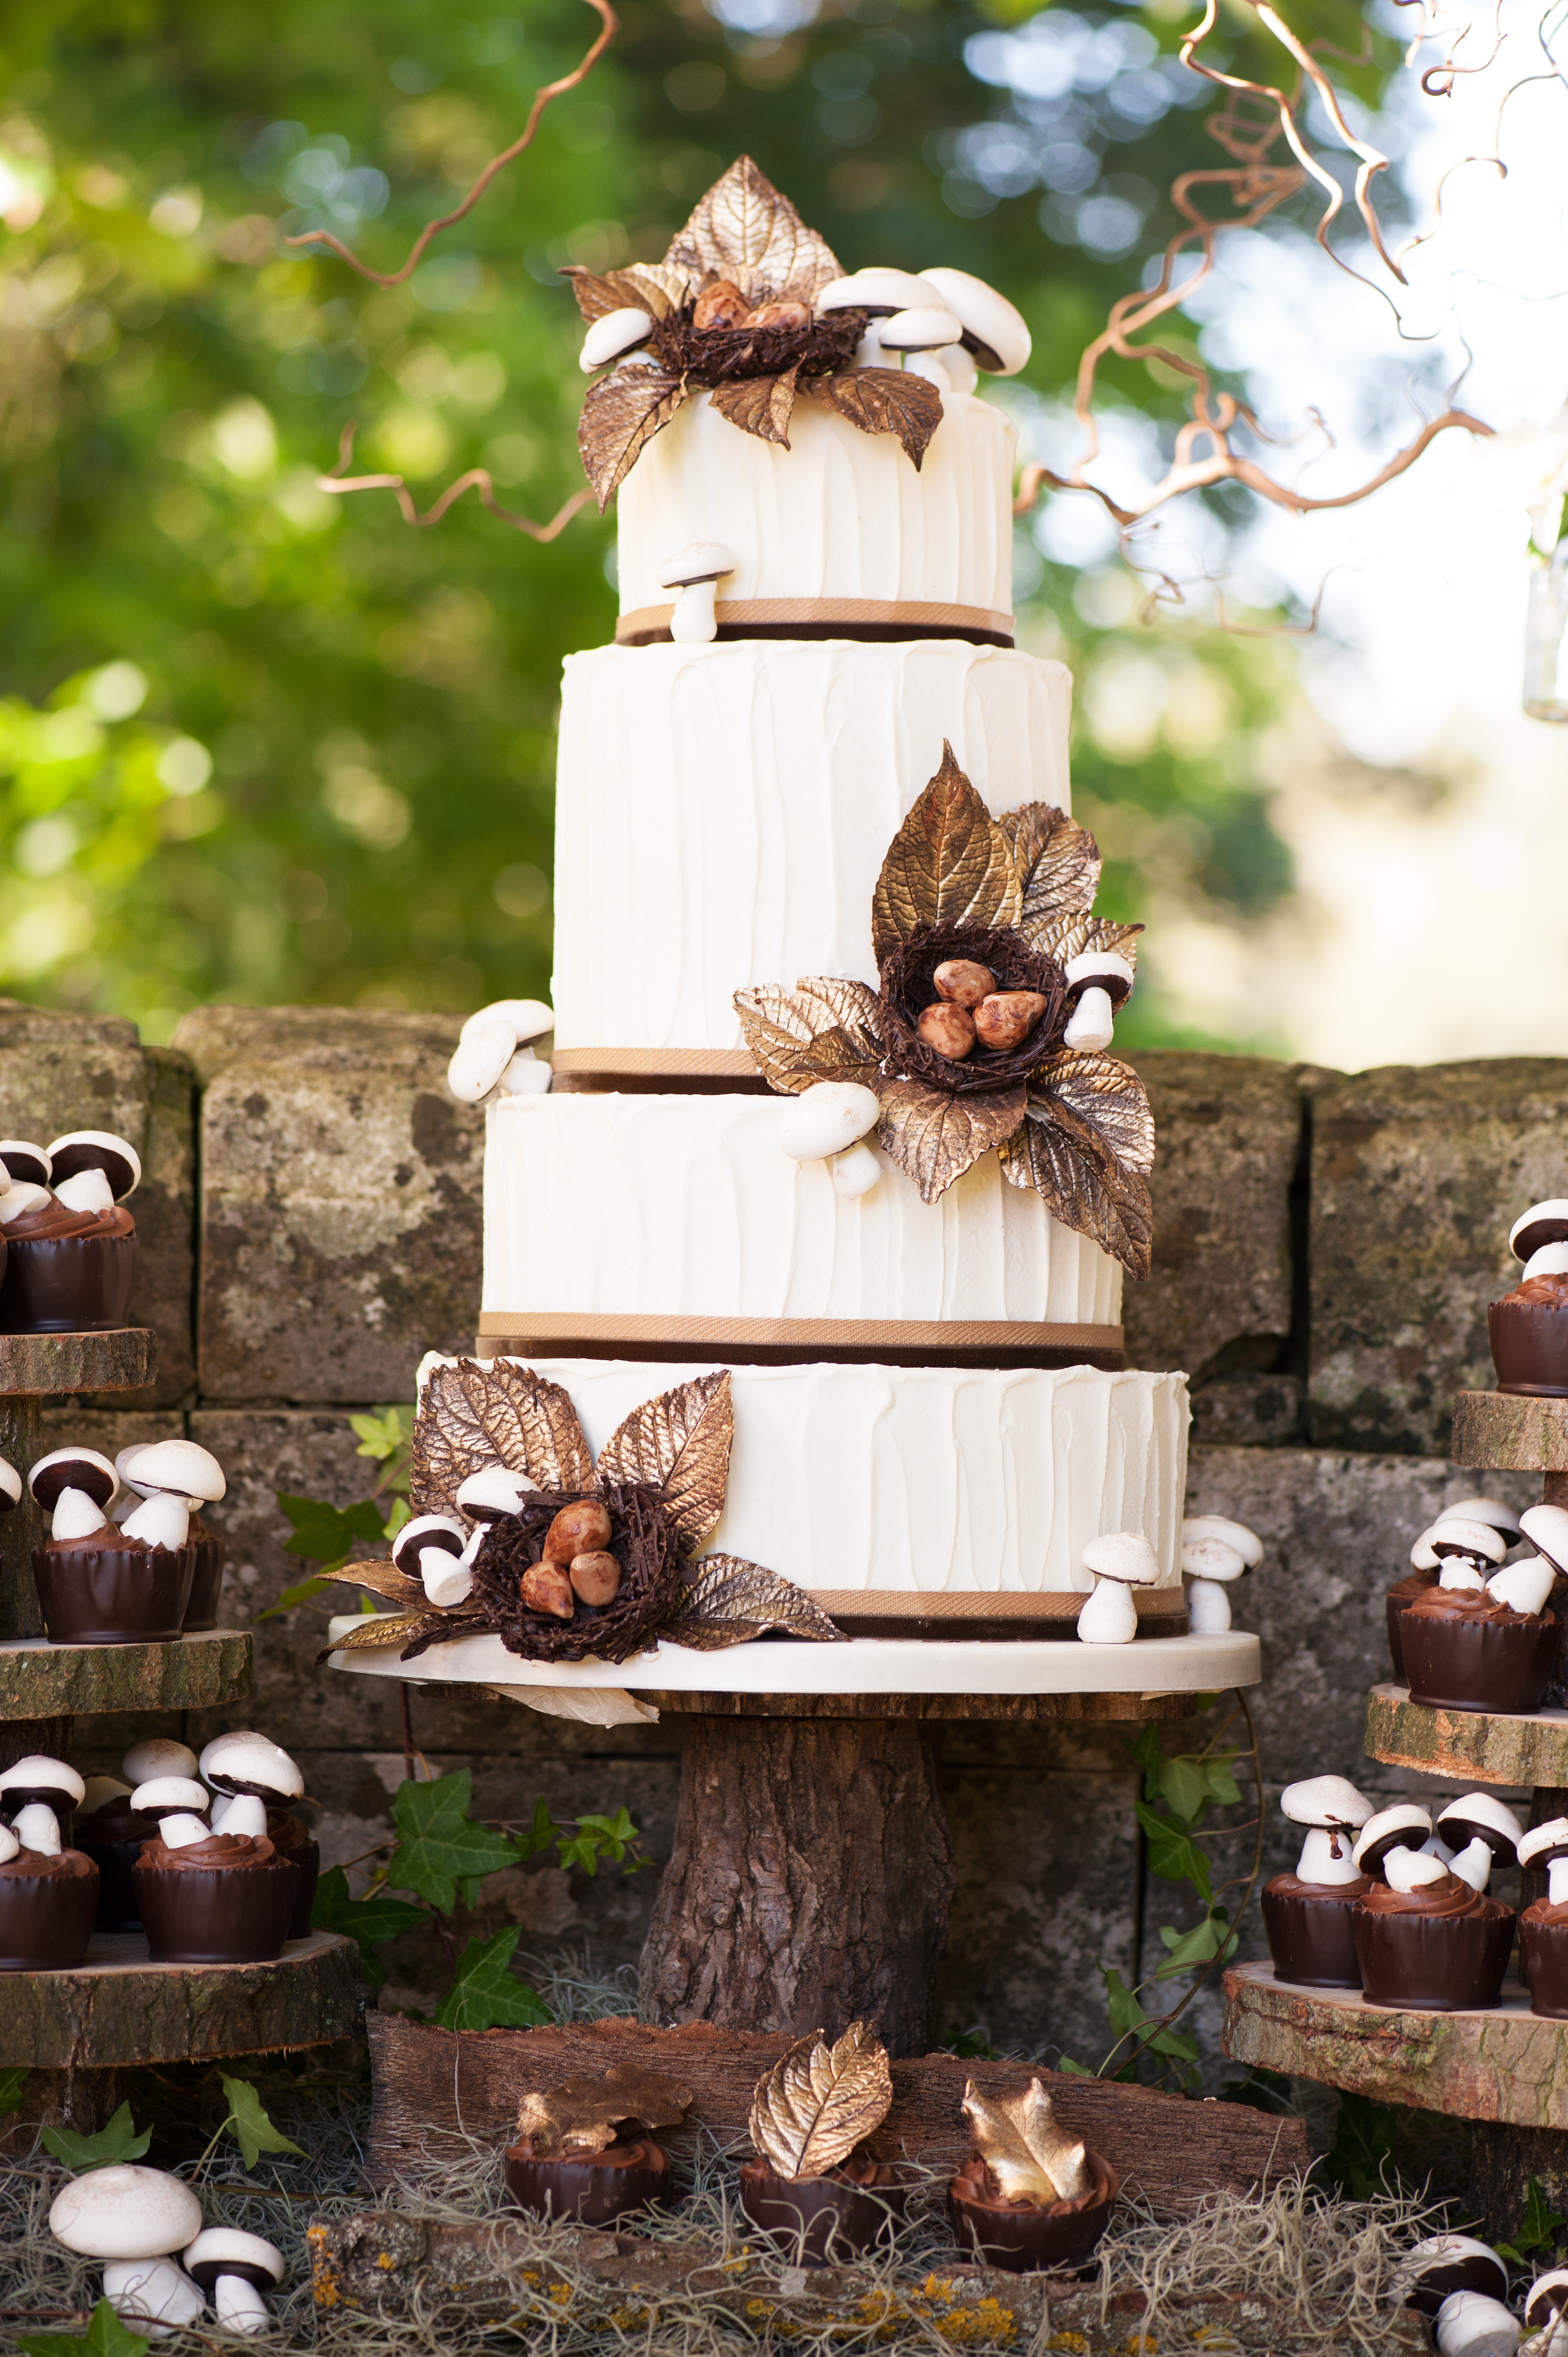 Rustic Themed Wedding Cakes  Woodland Themed Wedding Cake Rustic Wedding Chic